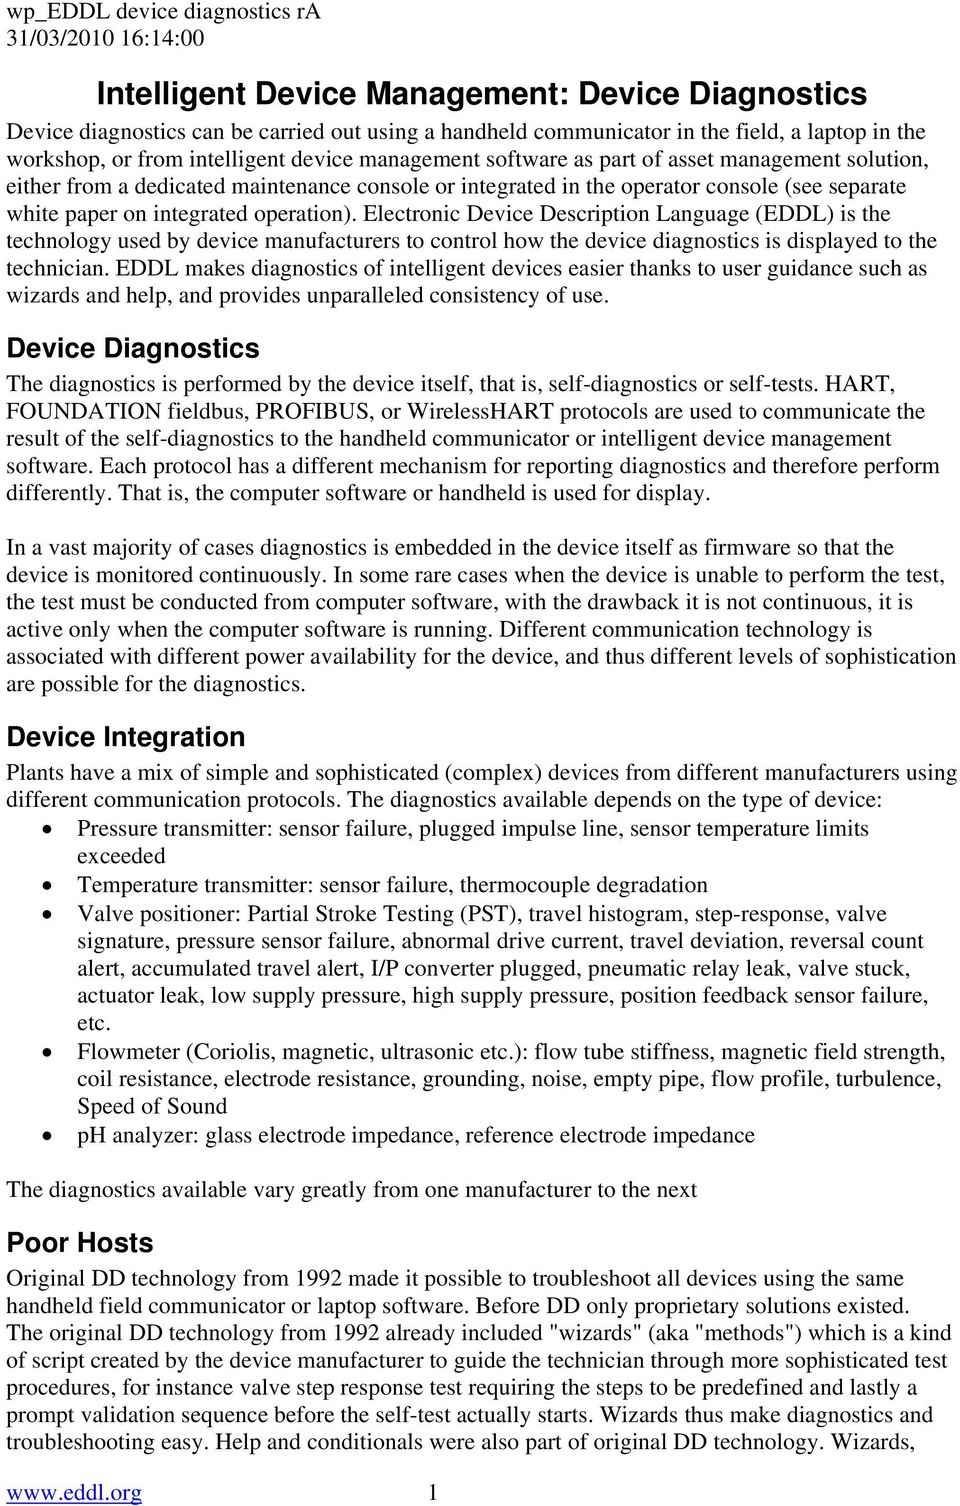 paper on integrated operation). Electronic Device Description Language (EDDL) is the technology used by device manufacturers to control how the device diagnostics is displayed to the technician.